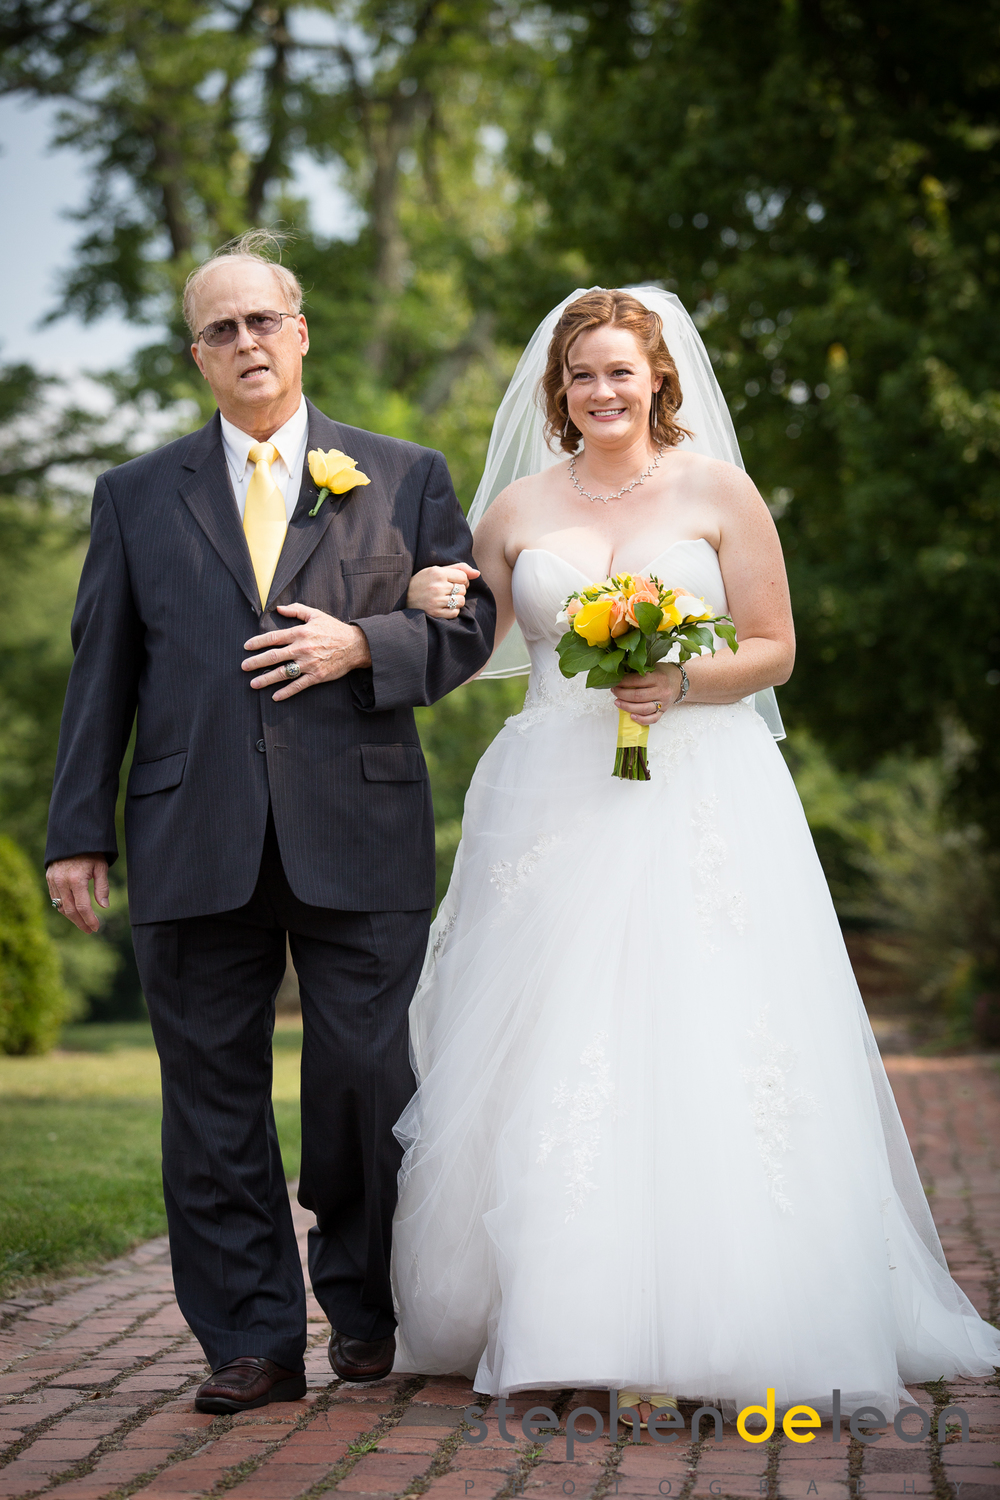 River_Farms_Wedding_027.jpg